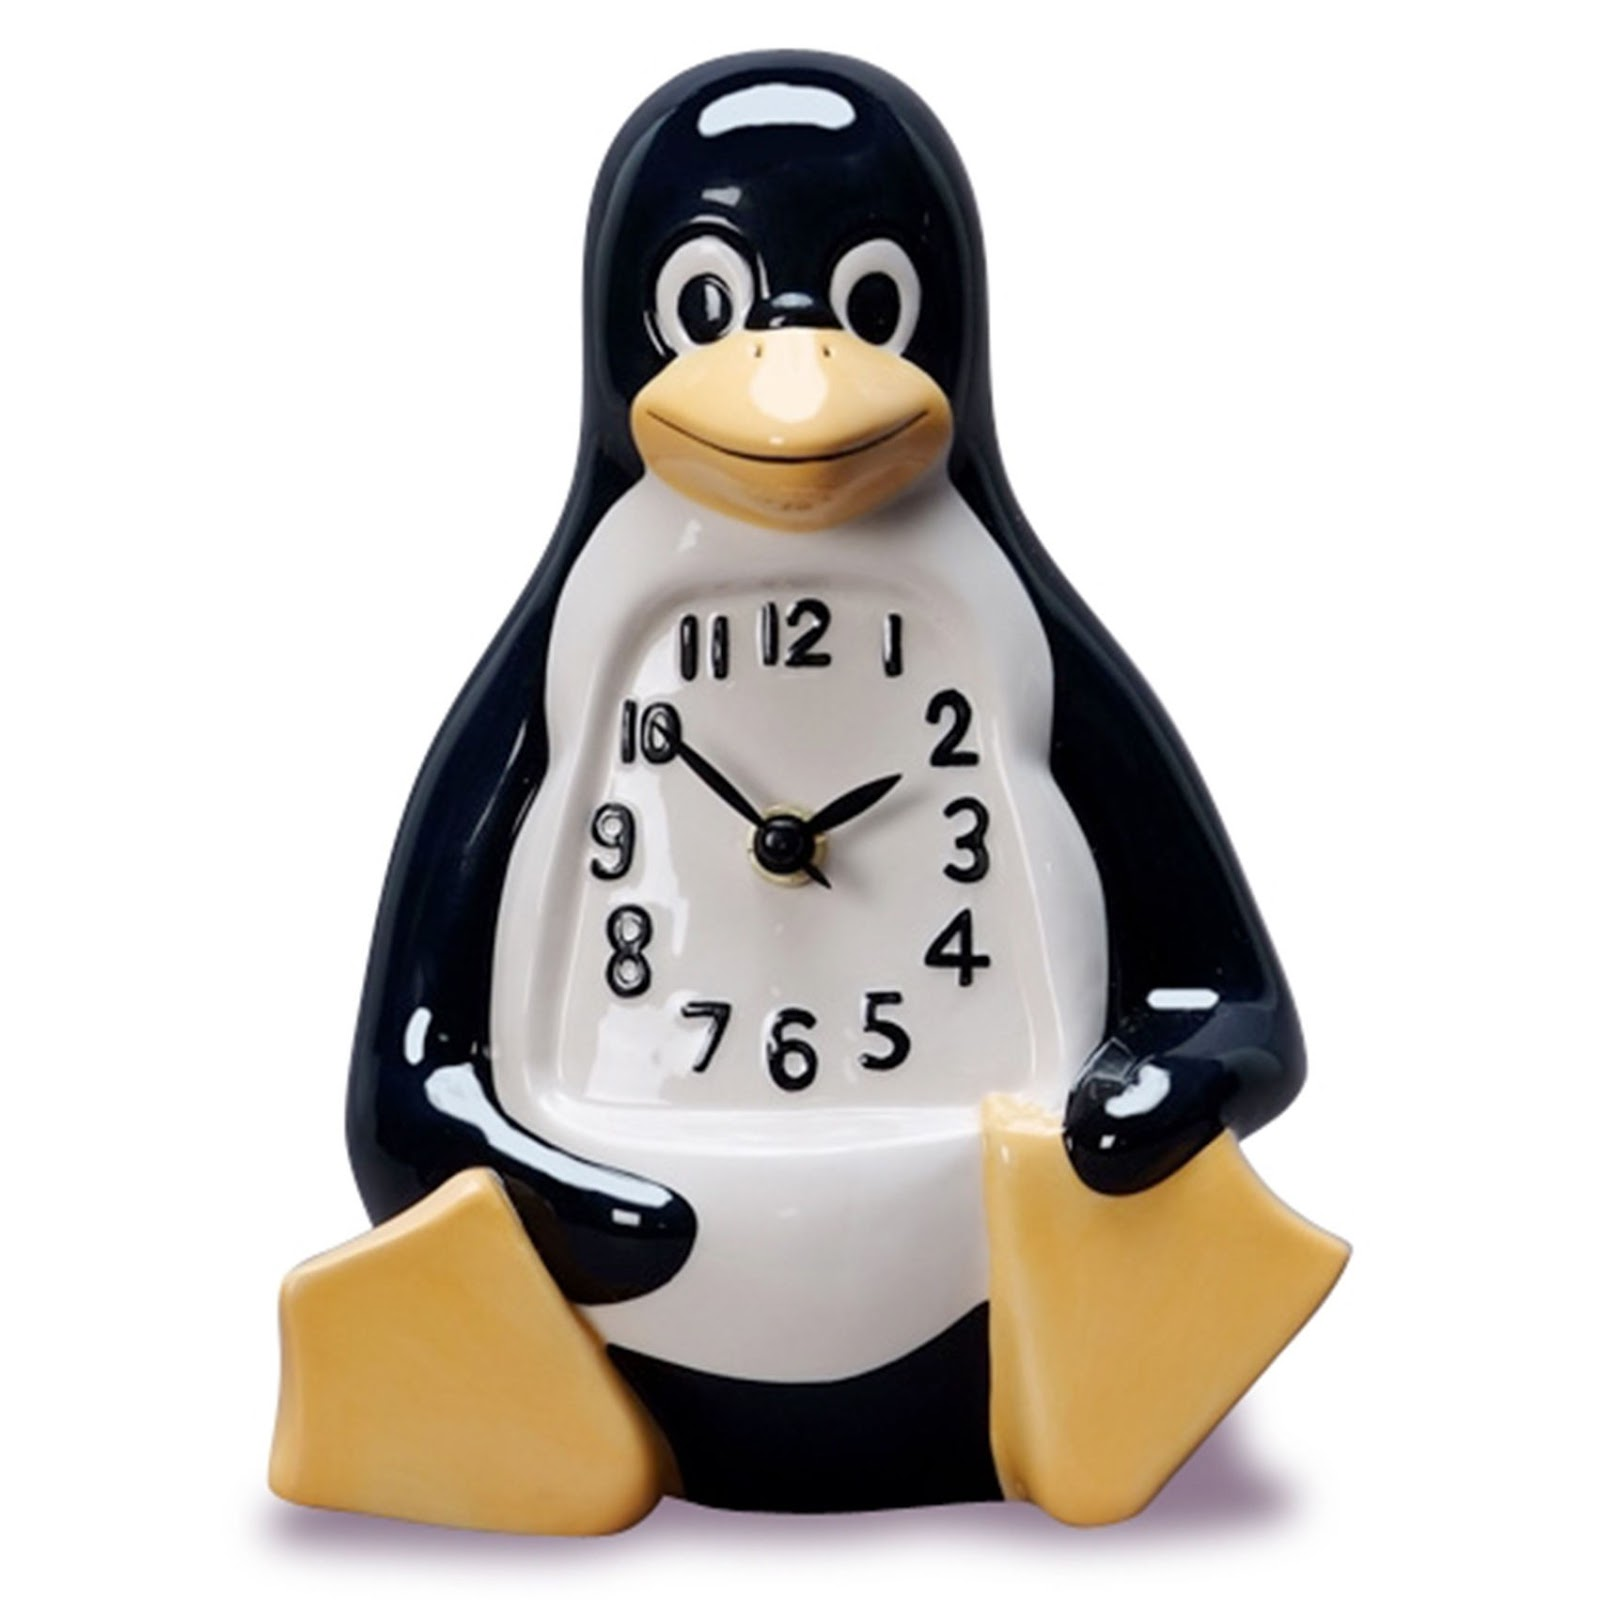 Tux the Penguin clock